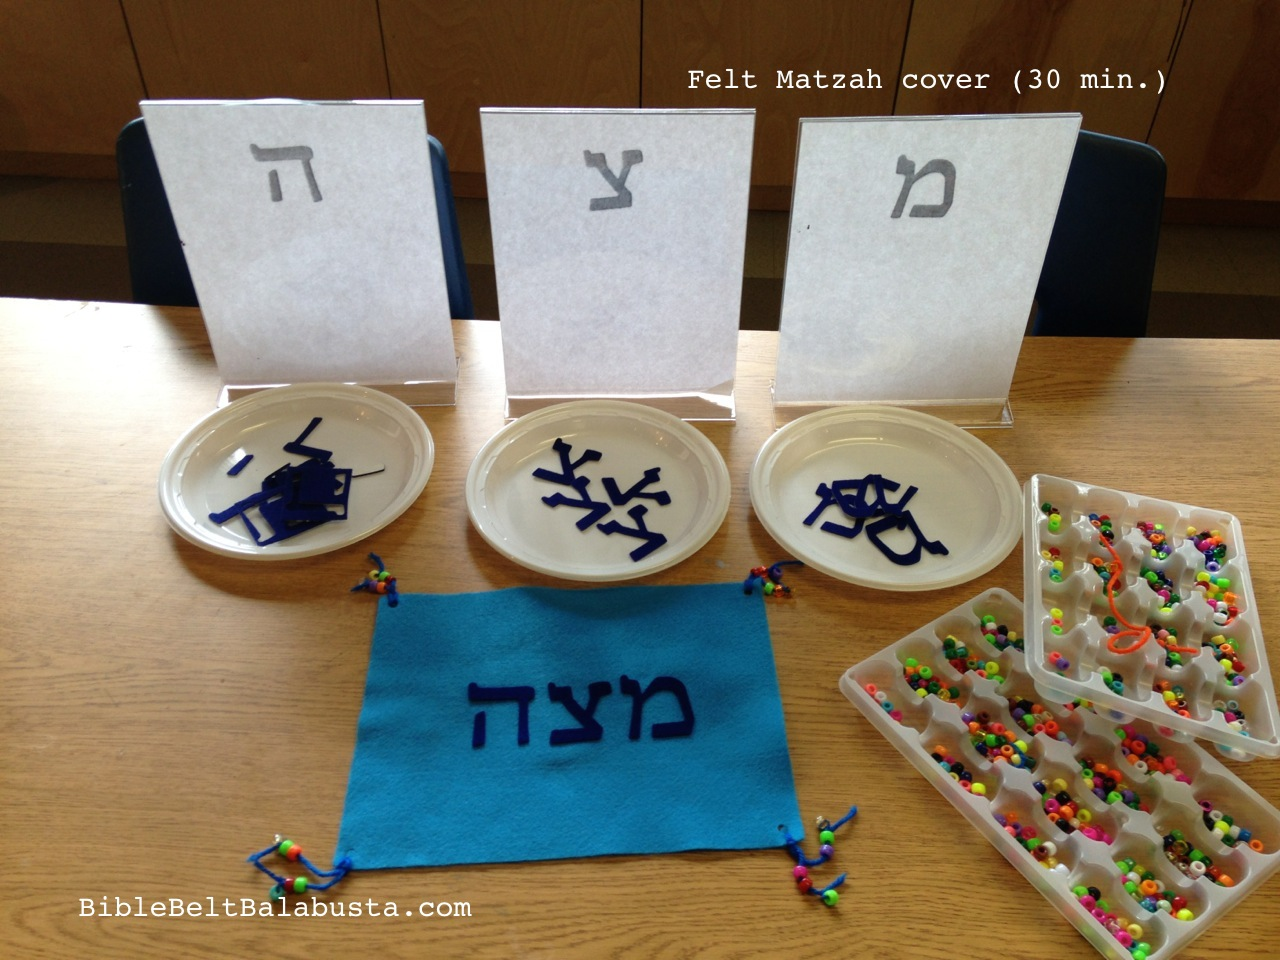 Passover bible belt balabusta page 2 for Passover crafts for sunday school